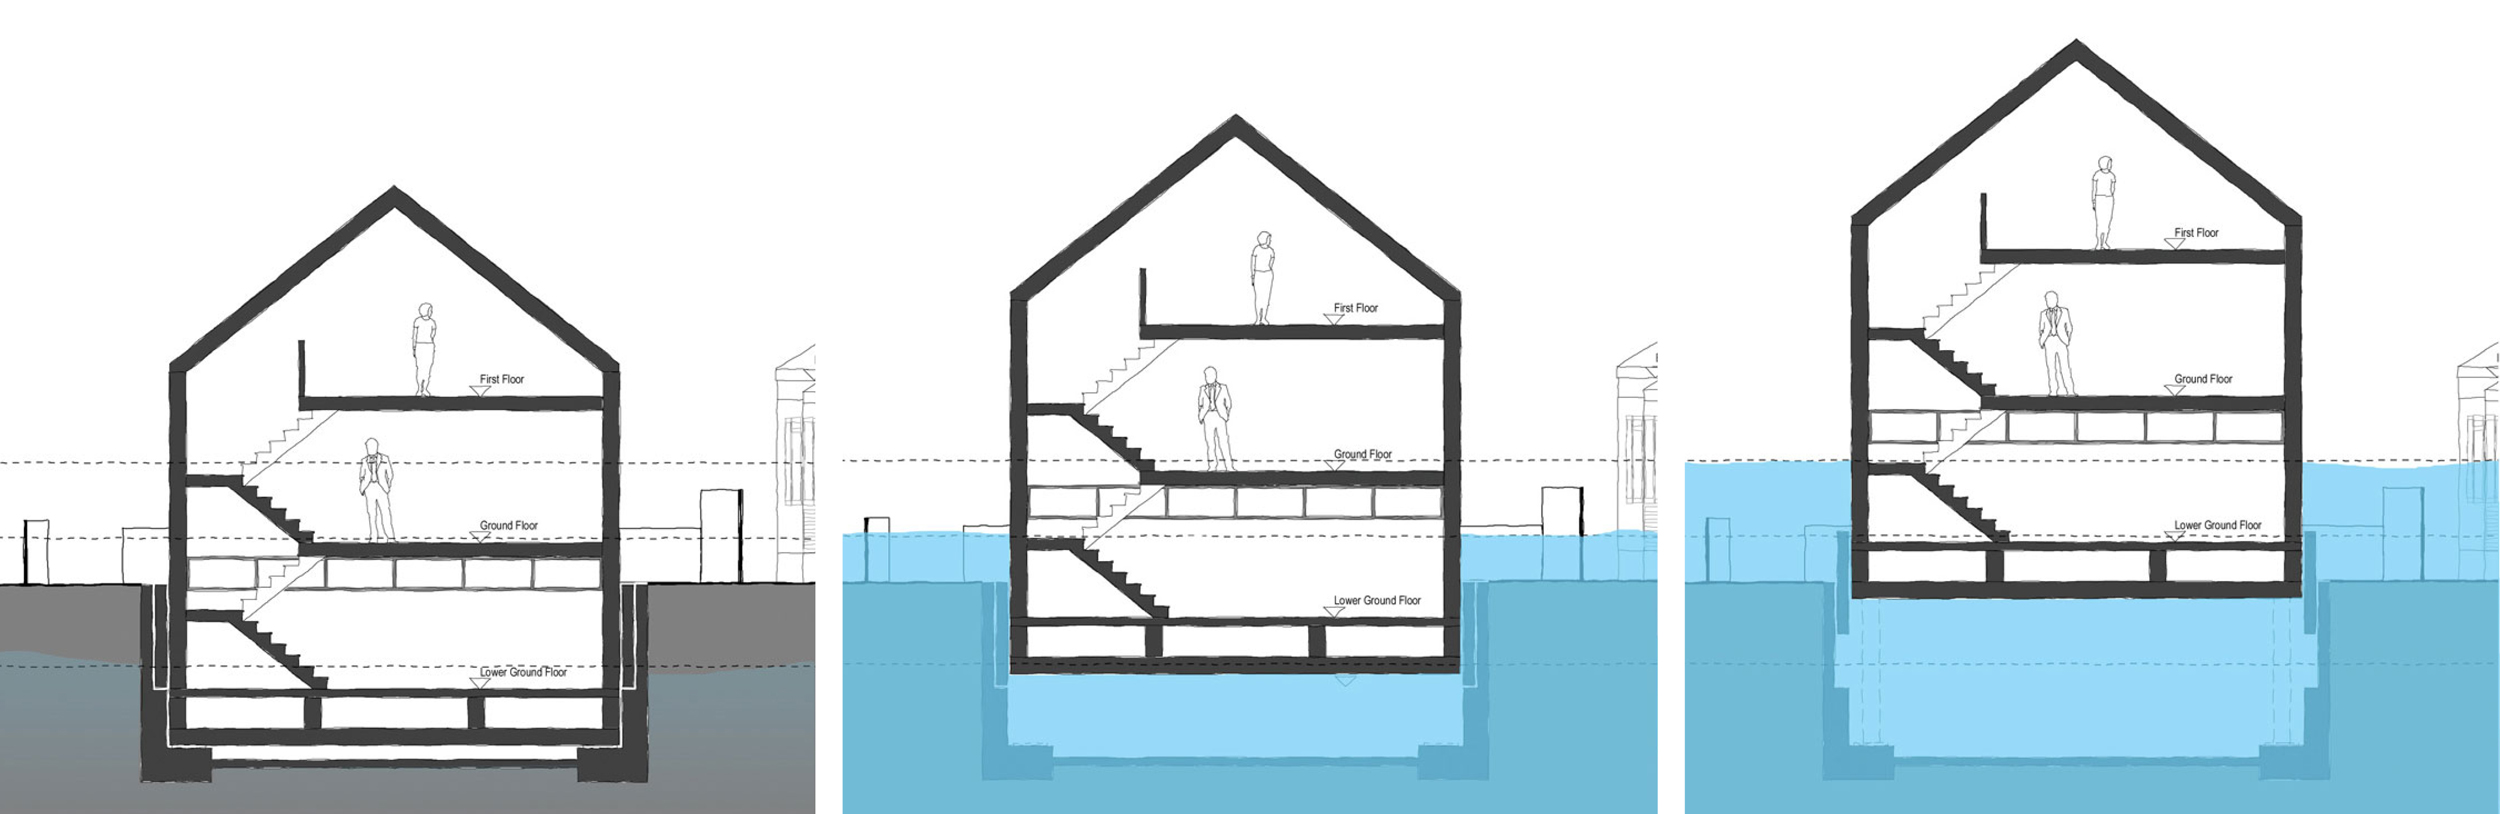 Amphibious House, section diagram